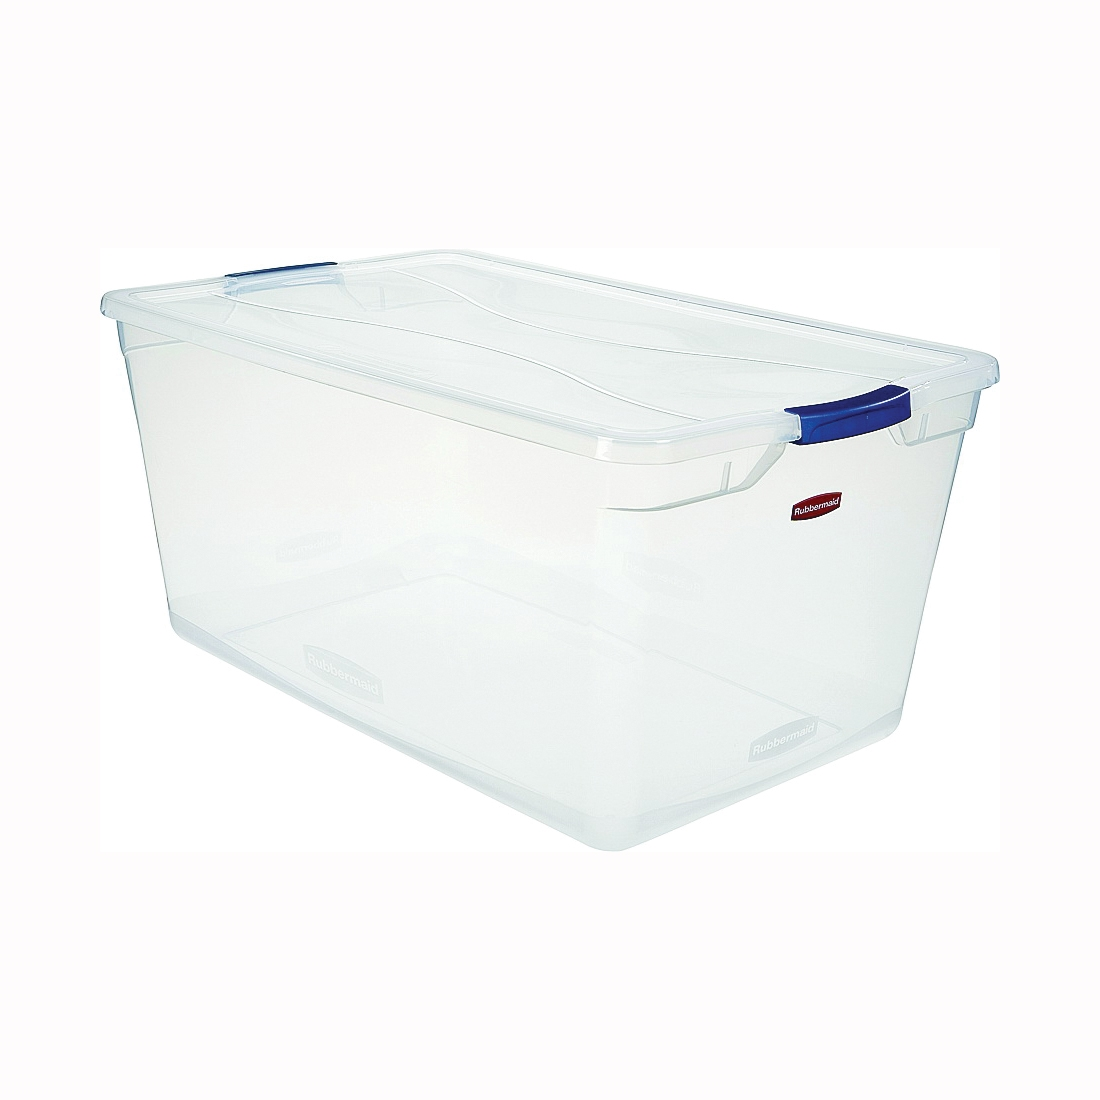 Picture of Rubbermaid Clever Store RMCC950001 Storage Container, Plastic, Clear Blue, 29 in L, 18 in W, 13.3 in H